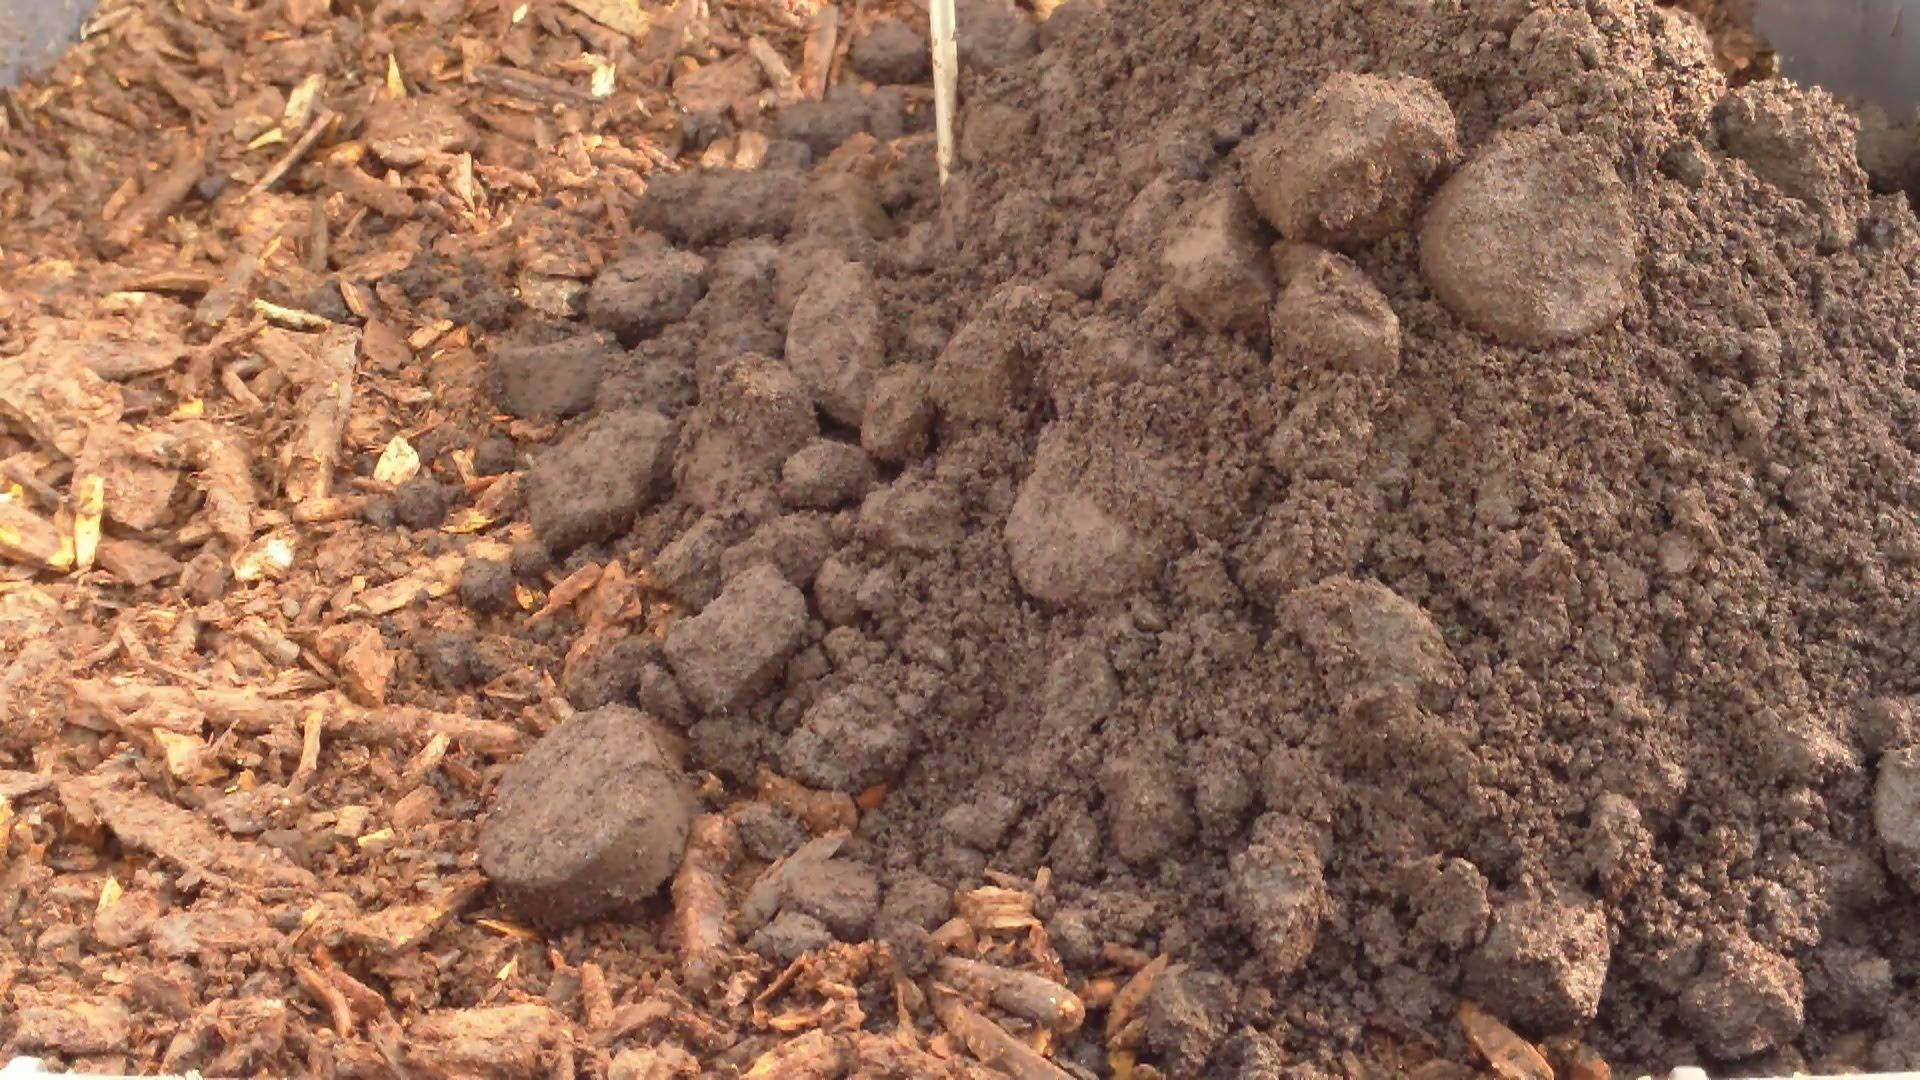 Used Coffee Grounds Are A Great Free Resource To Put Work In Your Garden They Enrich The Soil With Nitrogen And Other Minerals Improve Structure